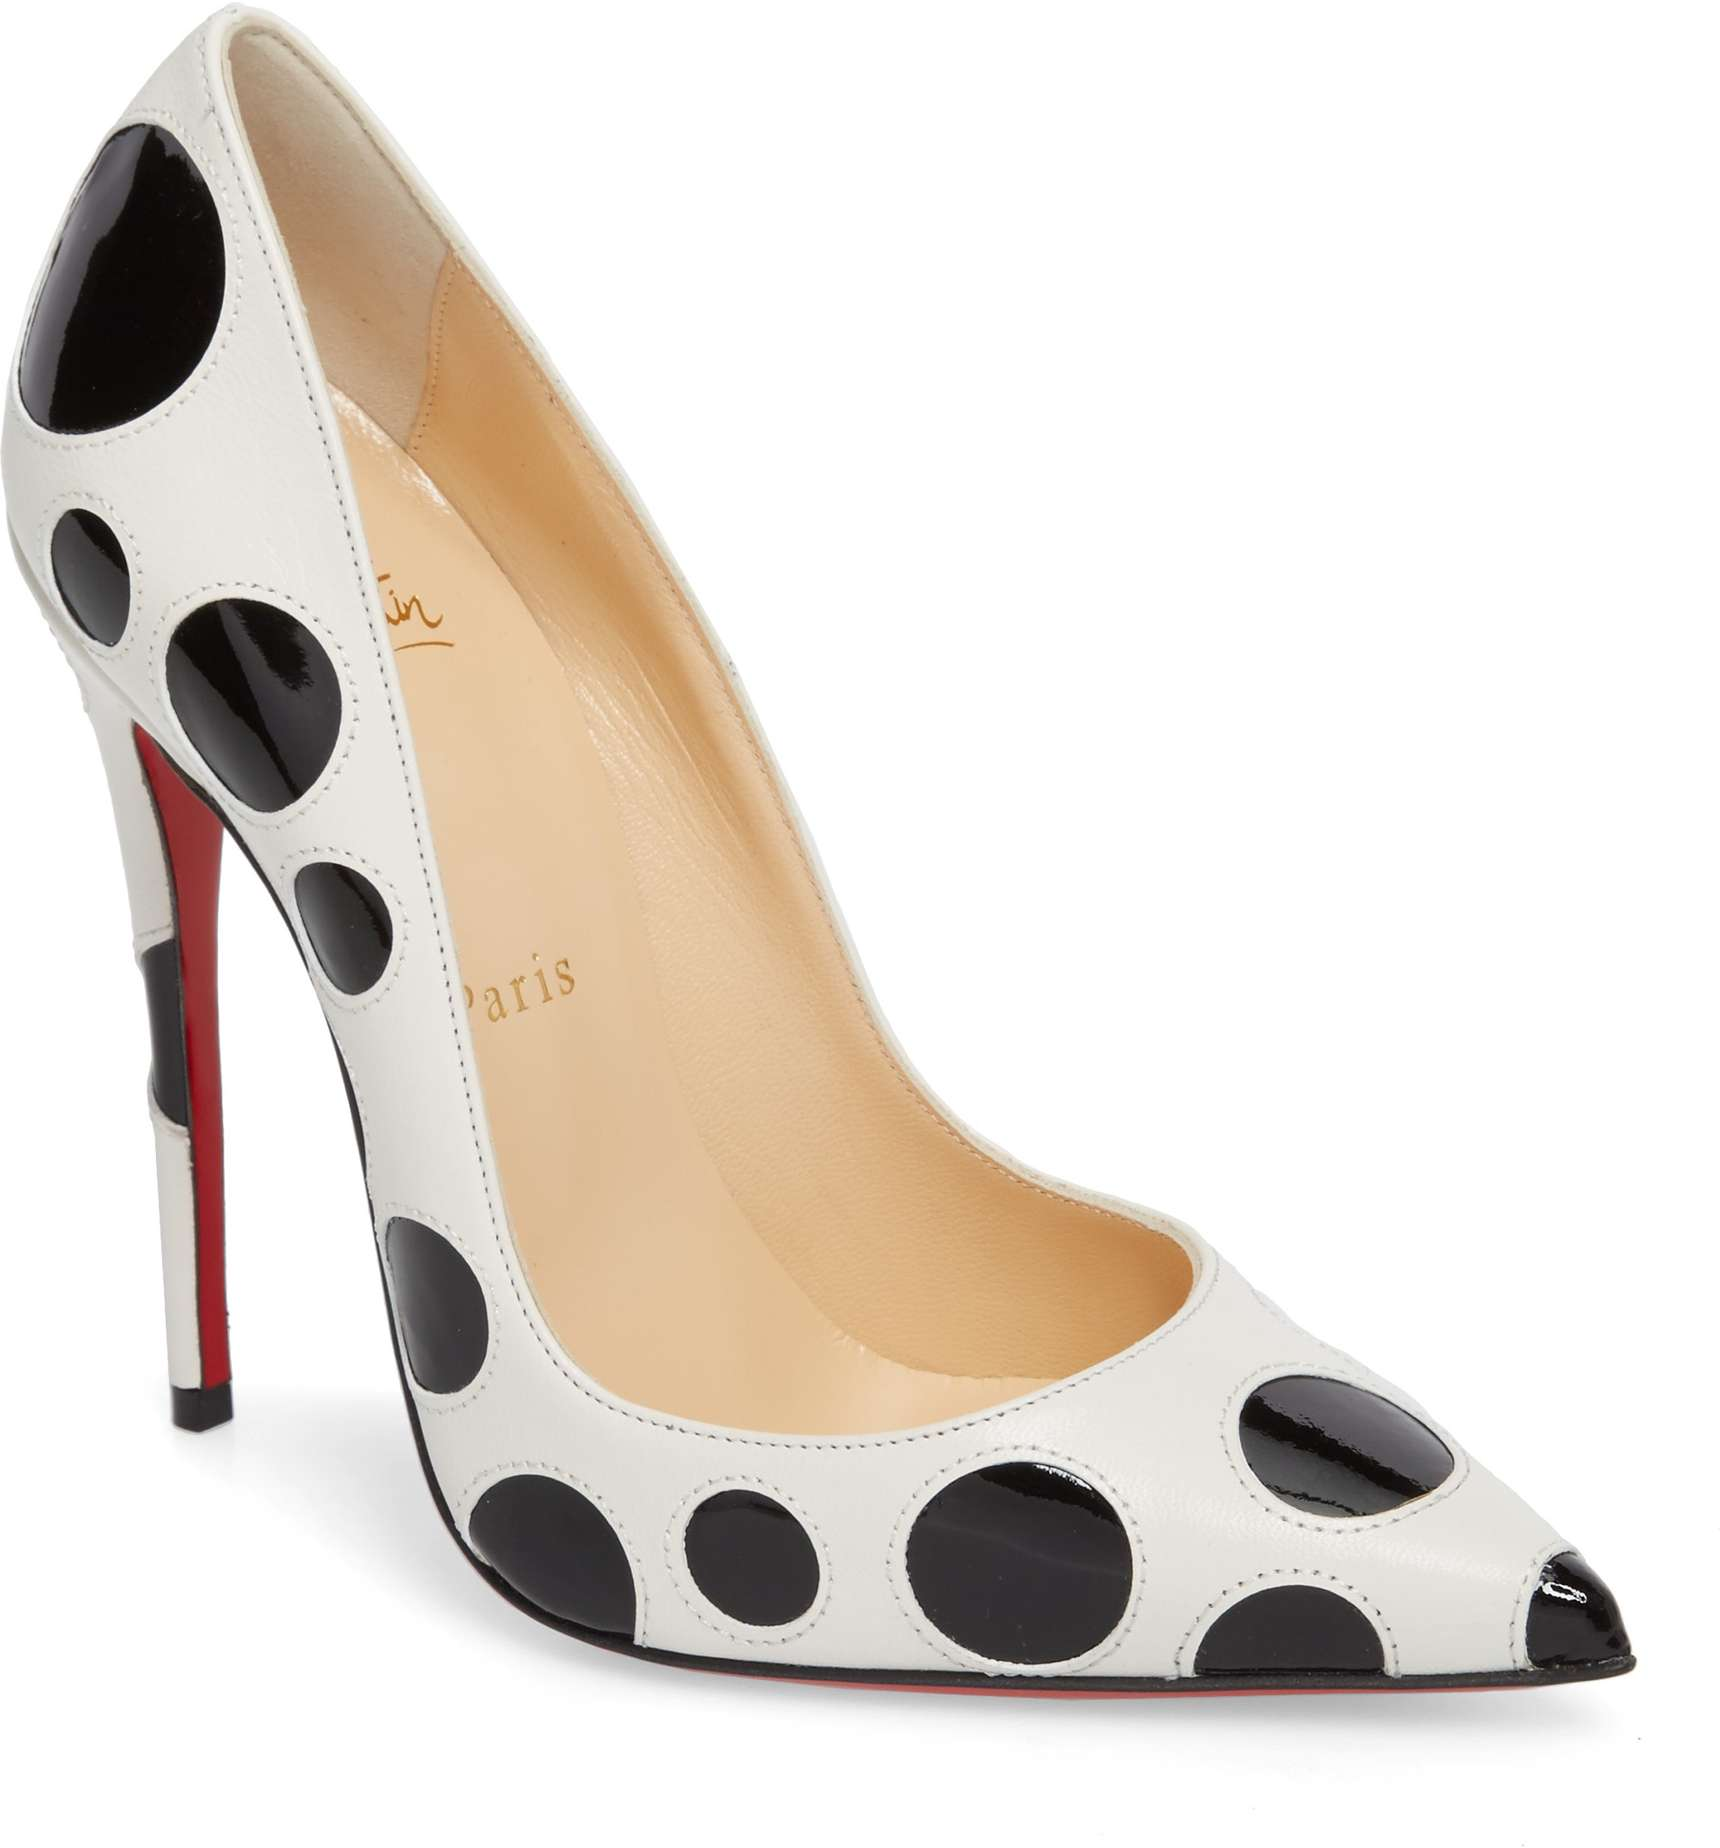 christian louboutin so kate polka dot pump